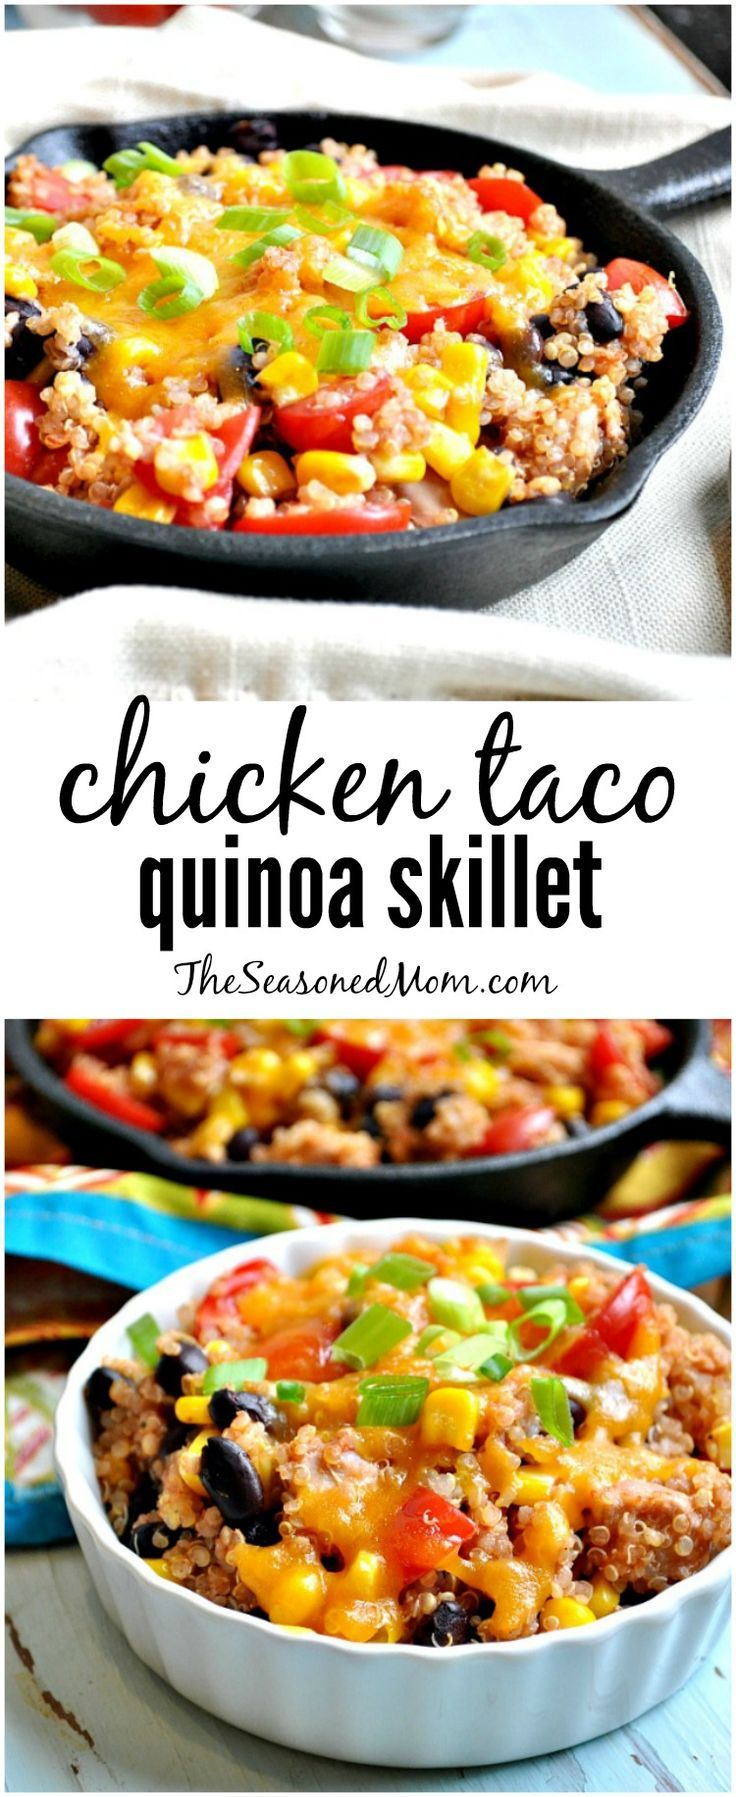 CHICKEN TACO QUINOA SKILLET is an easy, healthy, and family-friendly ...